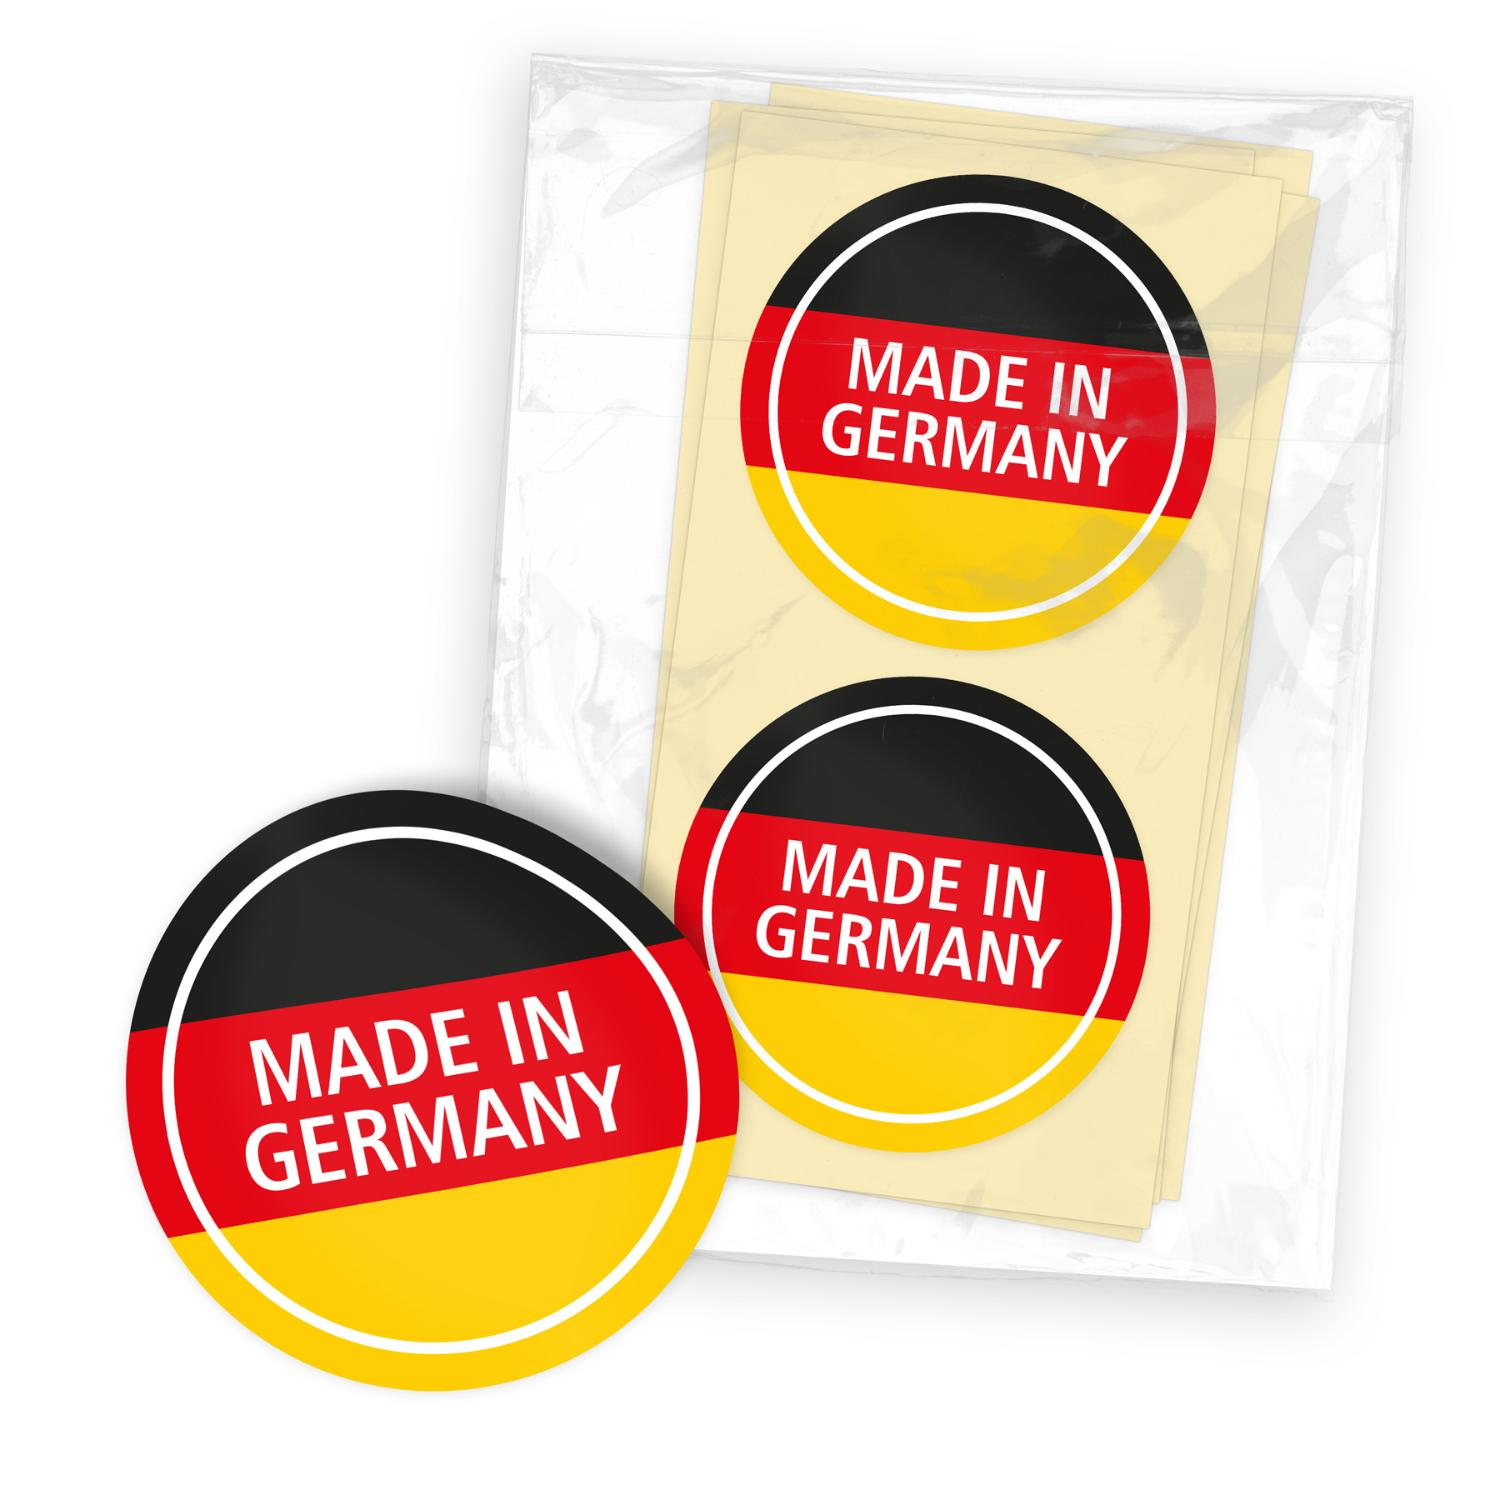 itenga 24x Sticker mit Text Made in Germany rund 4cm